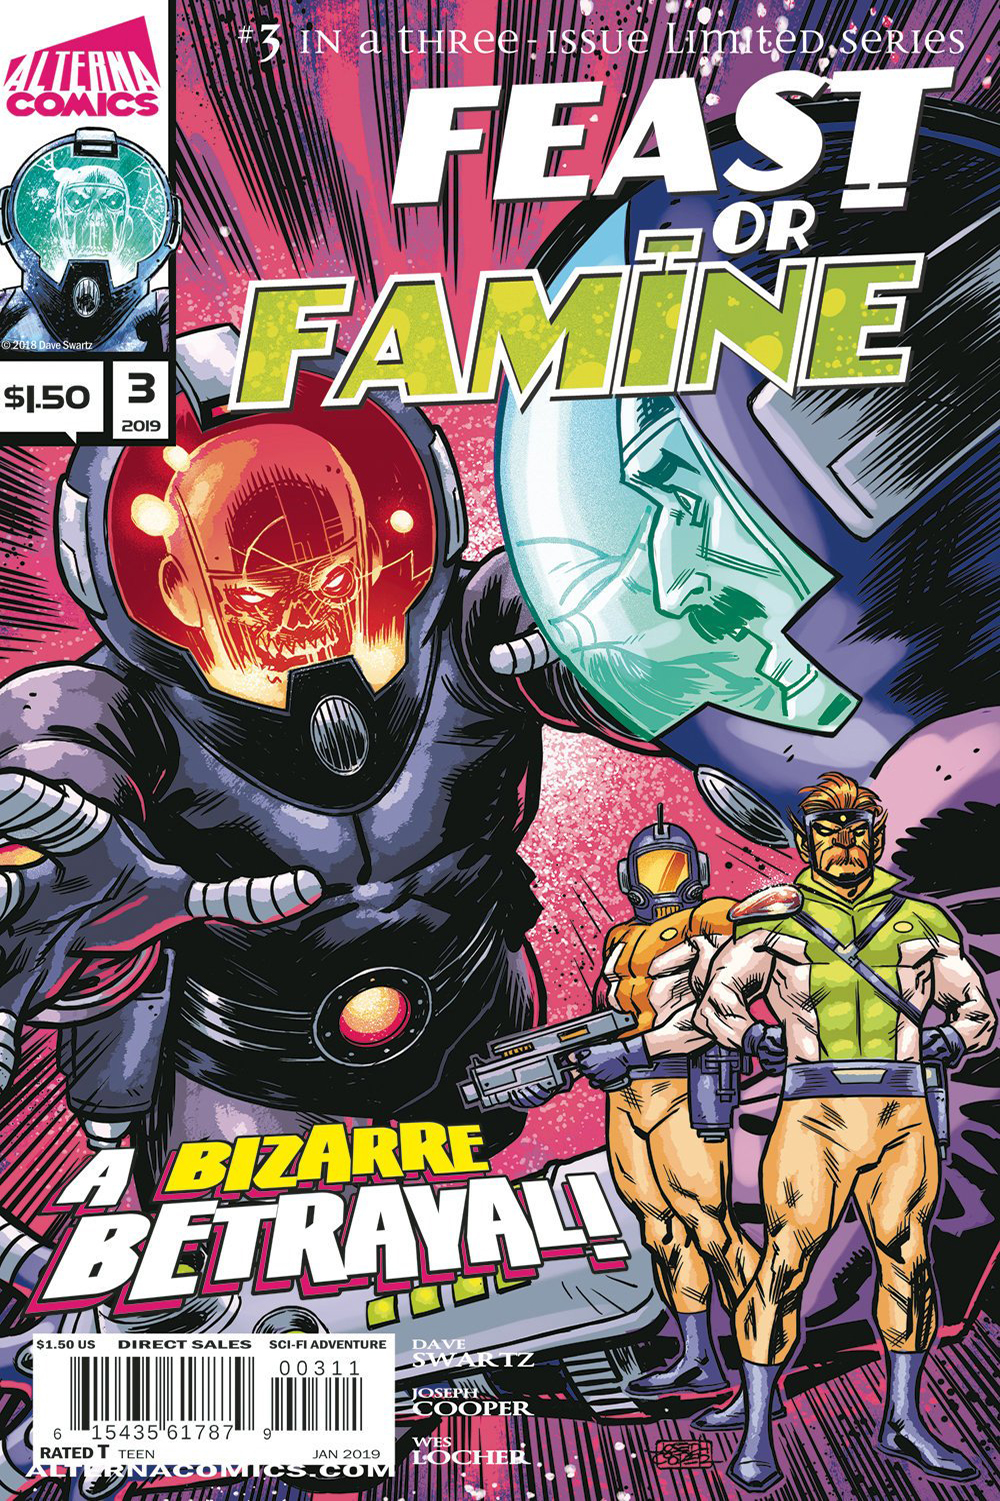 Feast or Famine Issue #2 Cover - Feast or Famine Comic